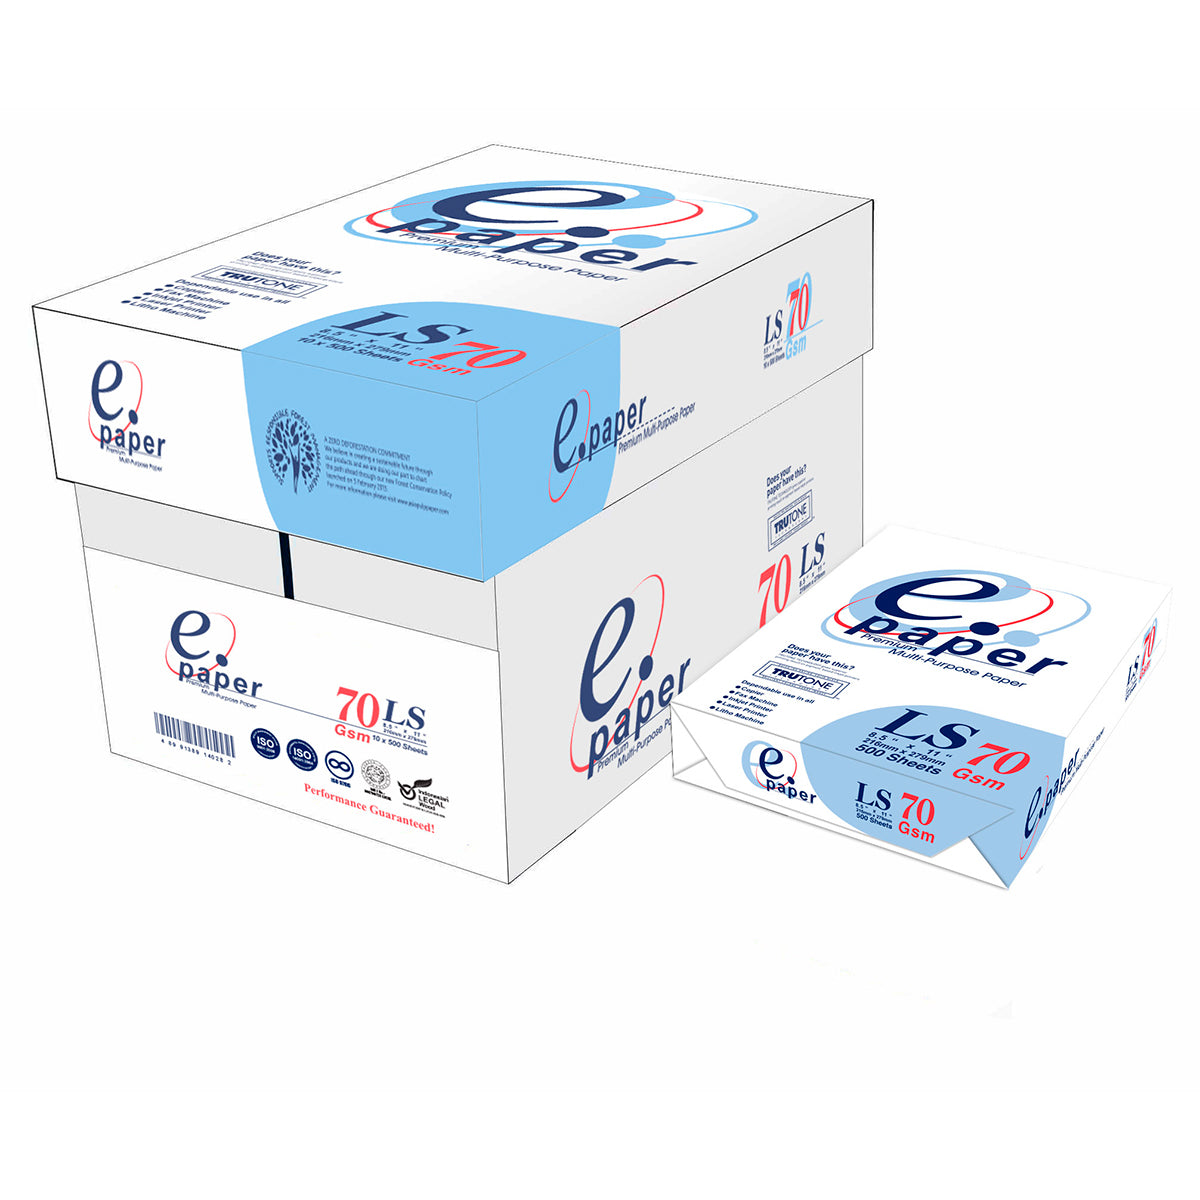 PAPEL BOND CARTA E.PAPER 70 GR